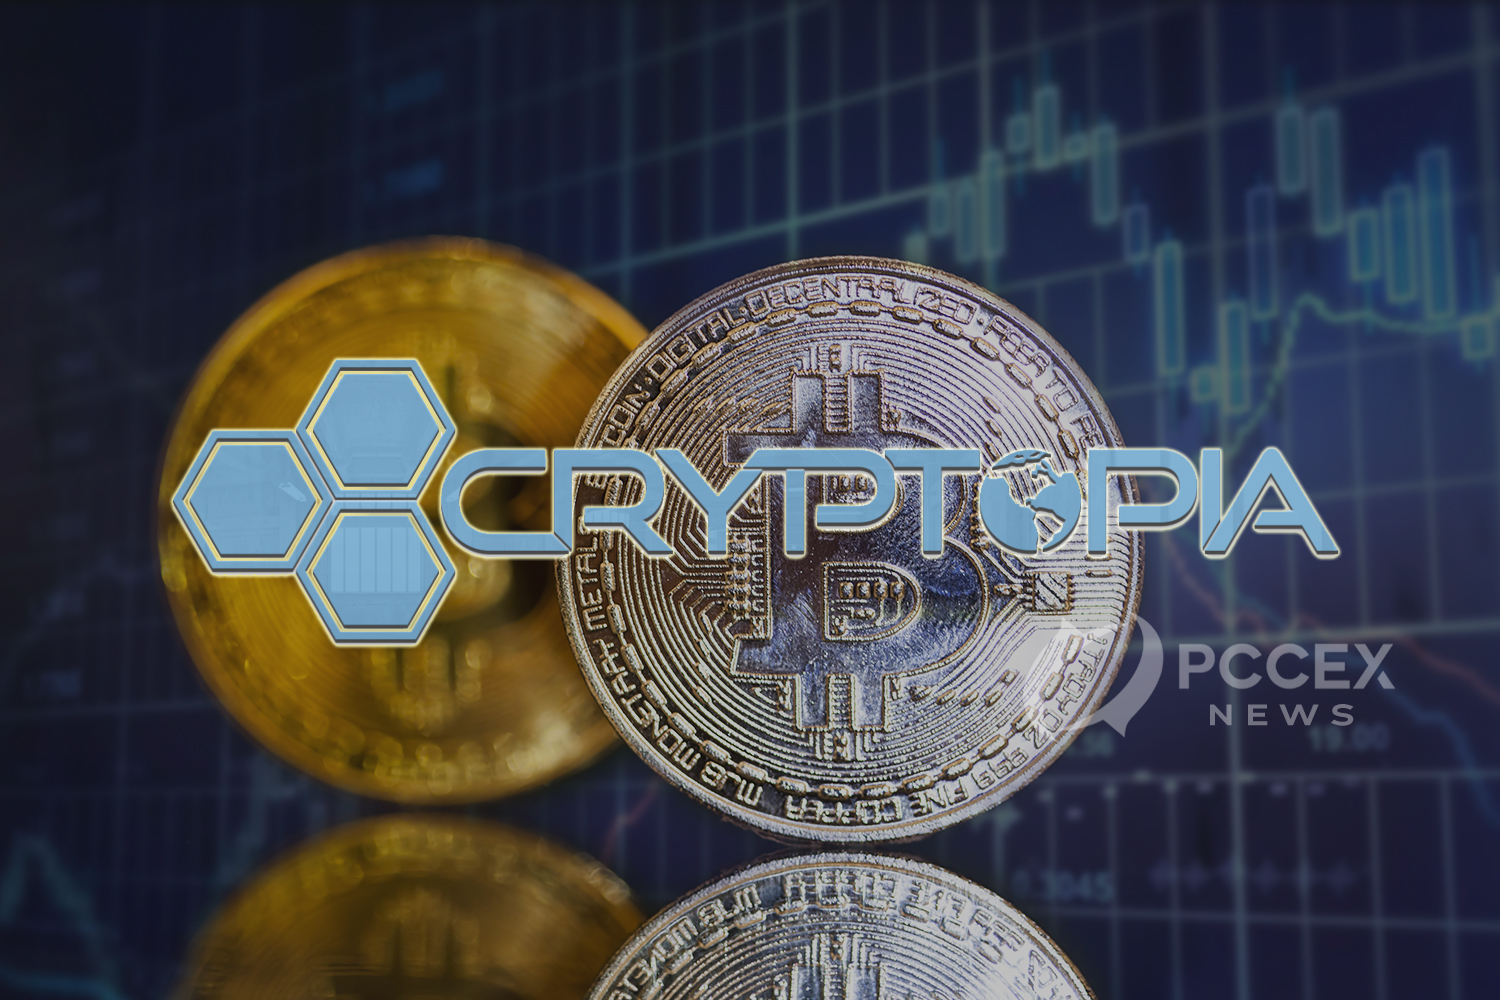 Judgement on User Assets; Cryptocurrency Exchange Cryptopia